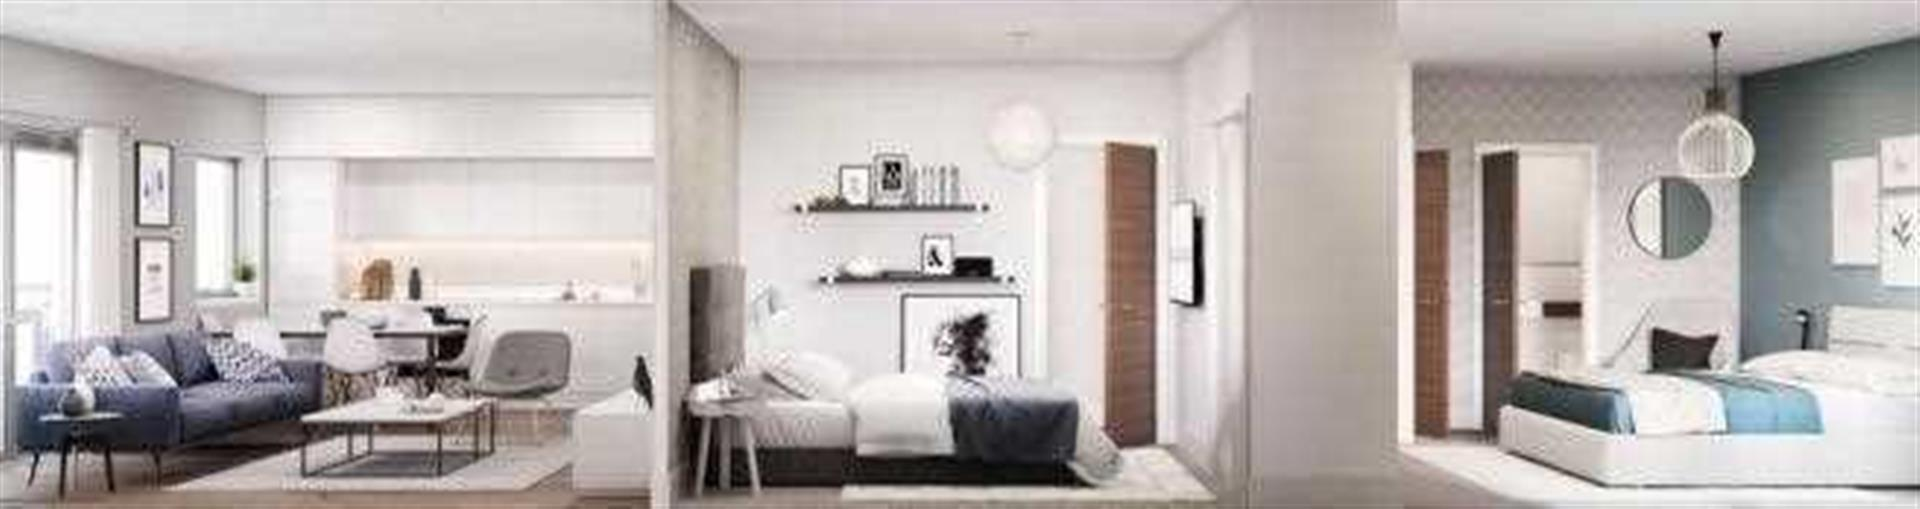 2 Bedroom Apartment Flat / Apartment To Rent - Image 4